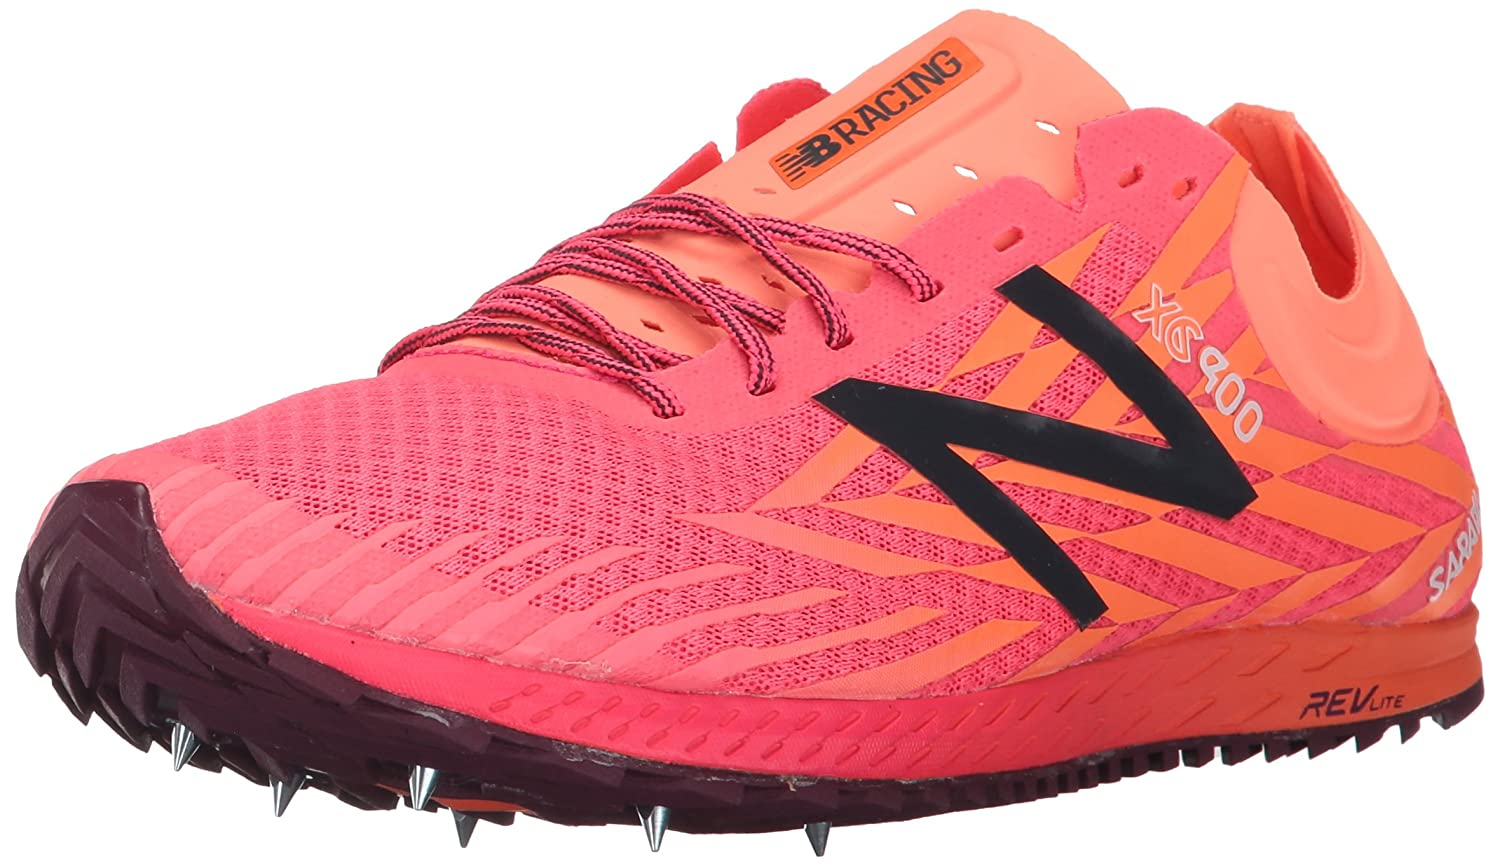 New Balance Women's 900V Removable Spike Track-Shoes, Alpha Pink/Vivid Tangerine, 8.5 B US NB2-WXCS9004-WMNS